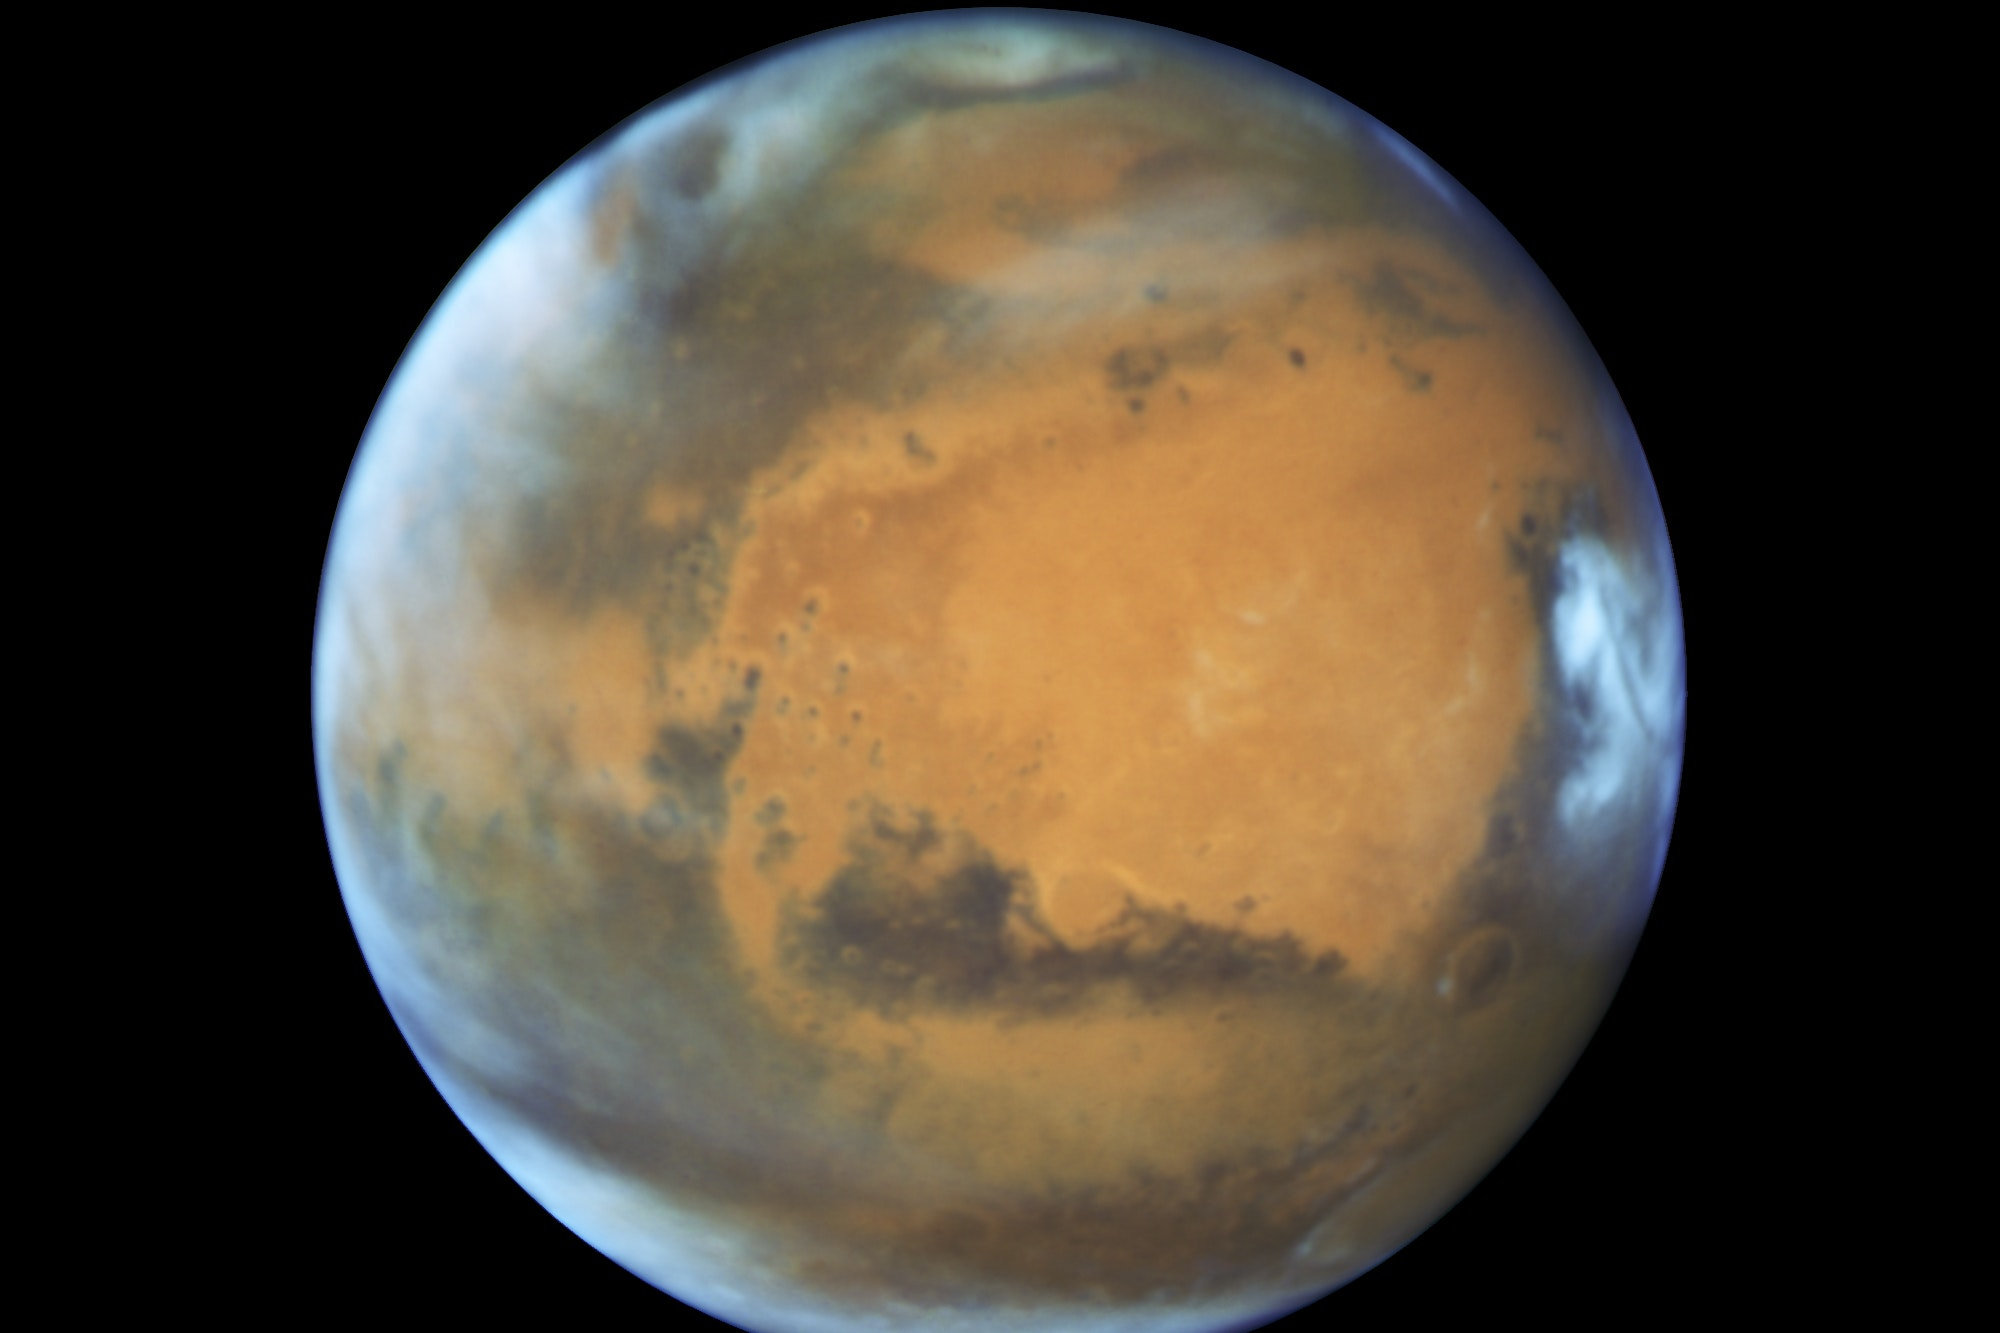 A 12-mile wide lake of liquid water has been discovered below the Martian southern ice cap increasing the possibility of life on the planet